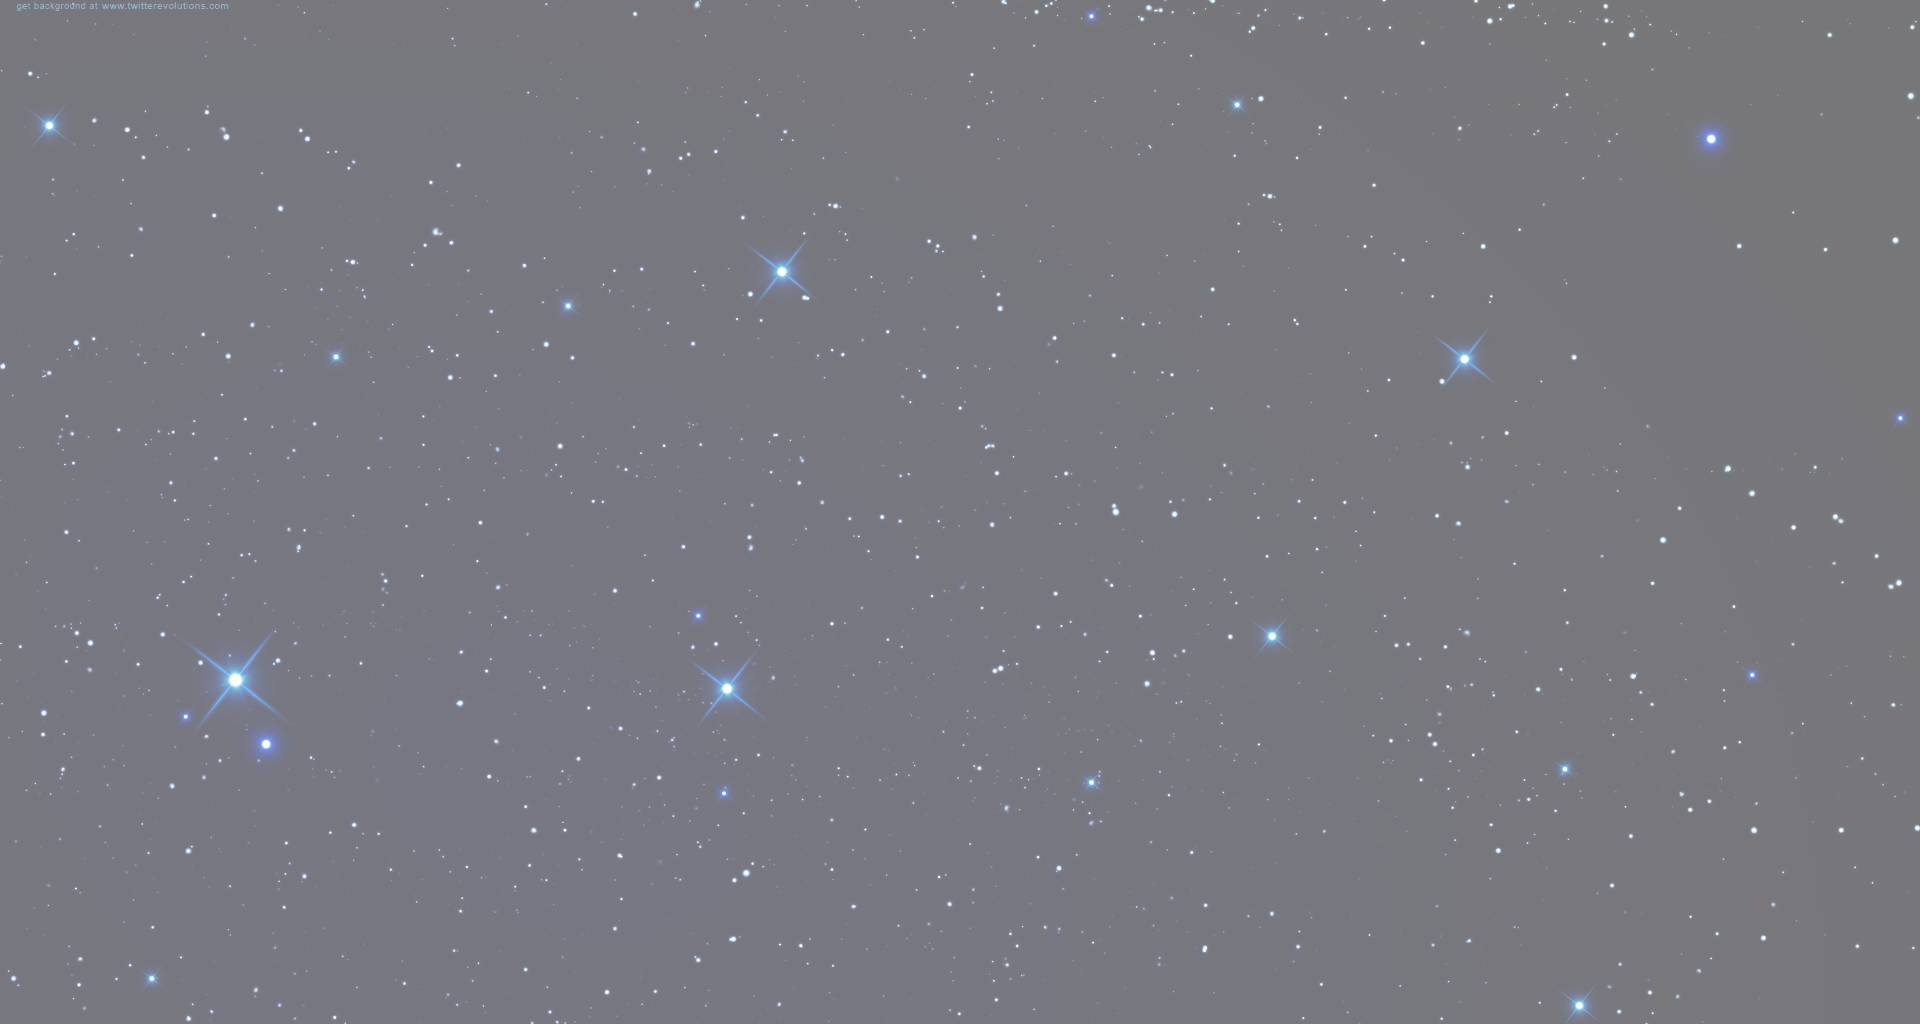 Space stars png. Moe shahrooz unsupported viewing